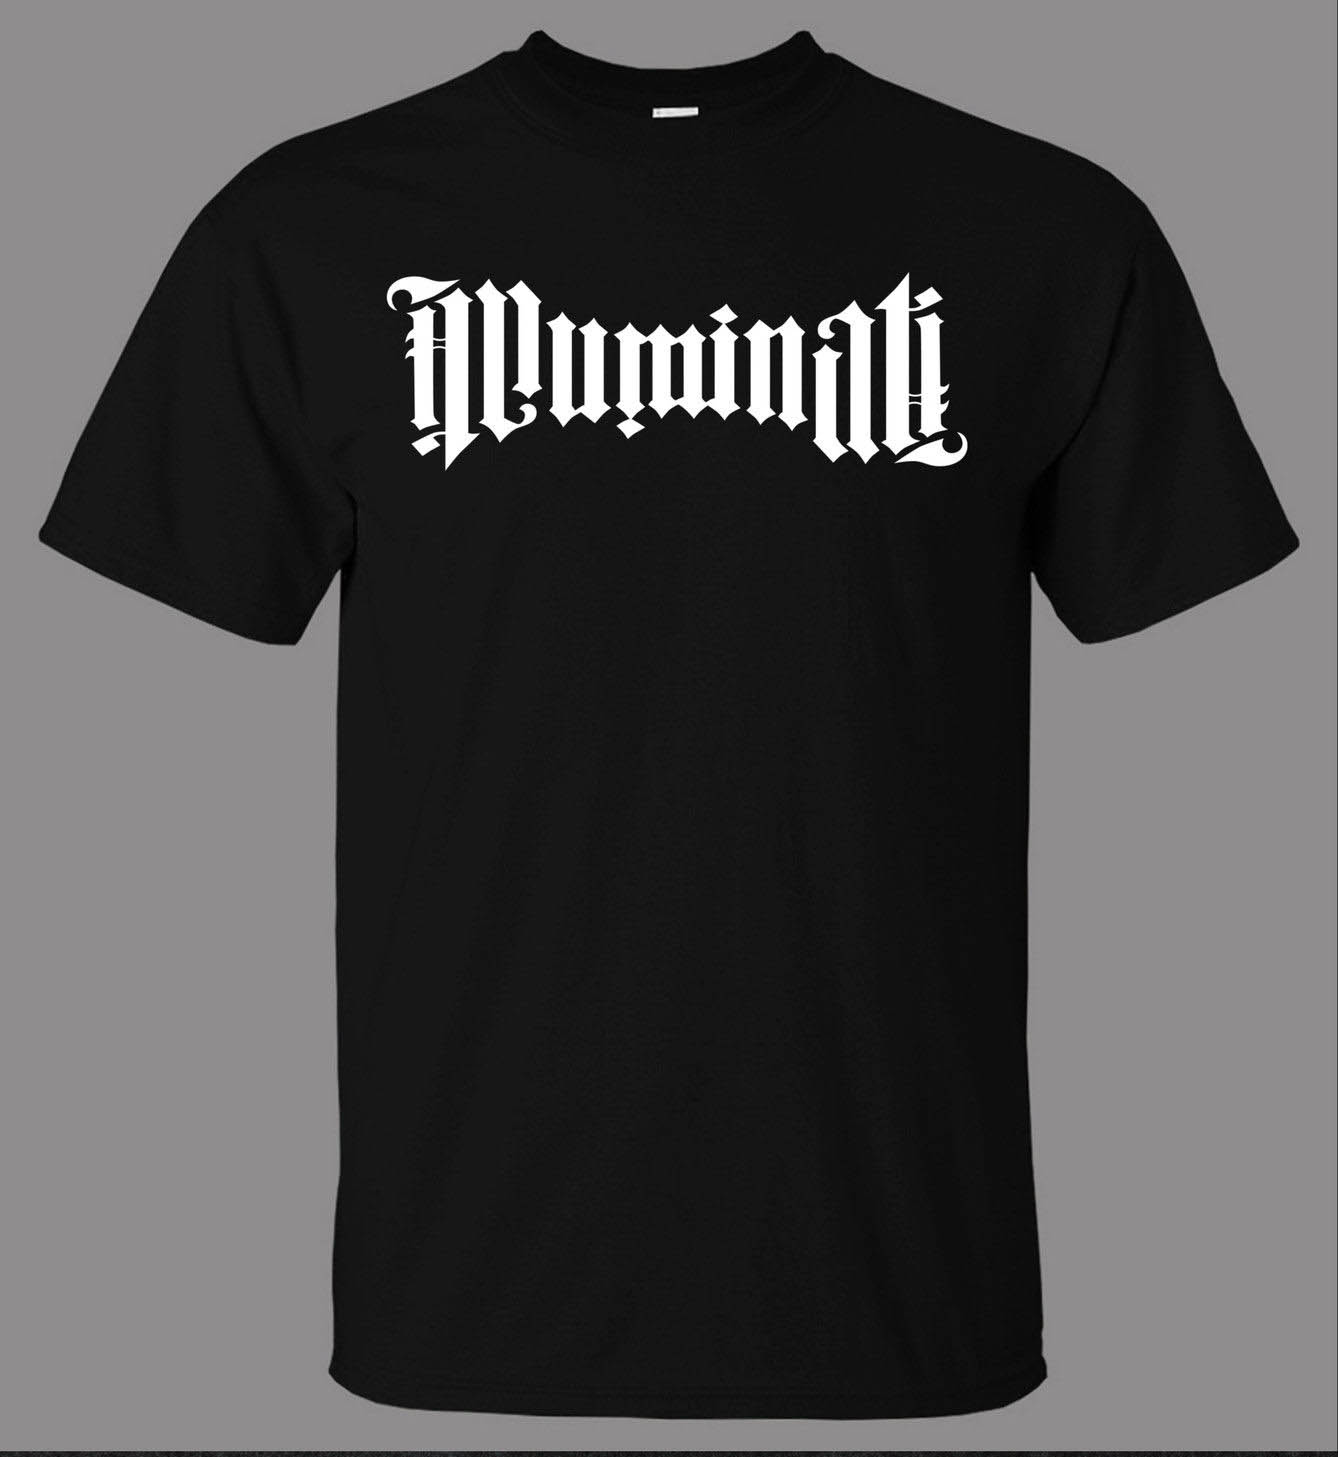 Illuminati Ambigram T-Shirt - Direct From Stockist New T Shirts Funny Tops Tee New Unisex Funny Tops Shirt Plus Size